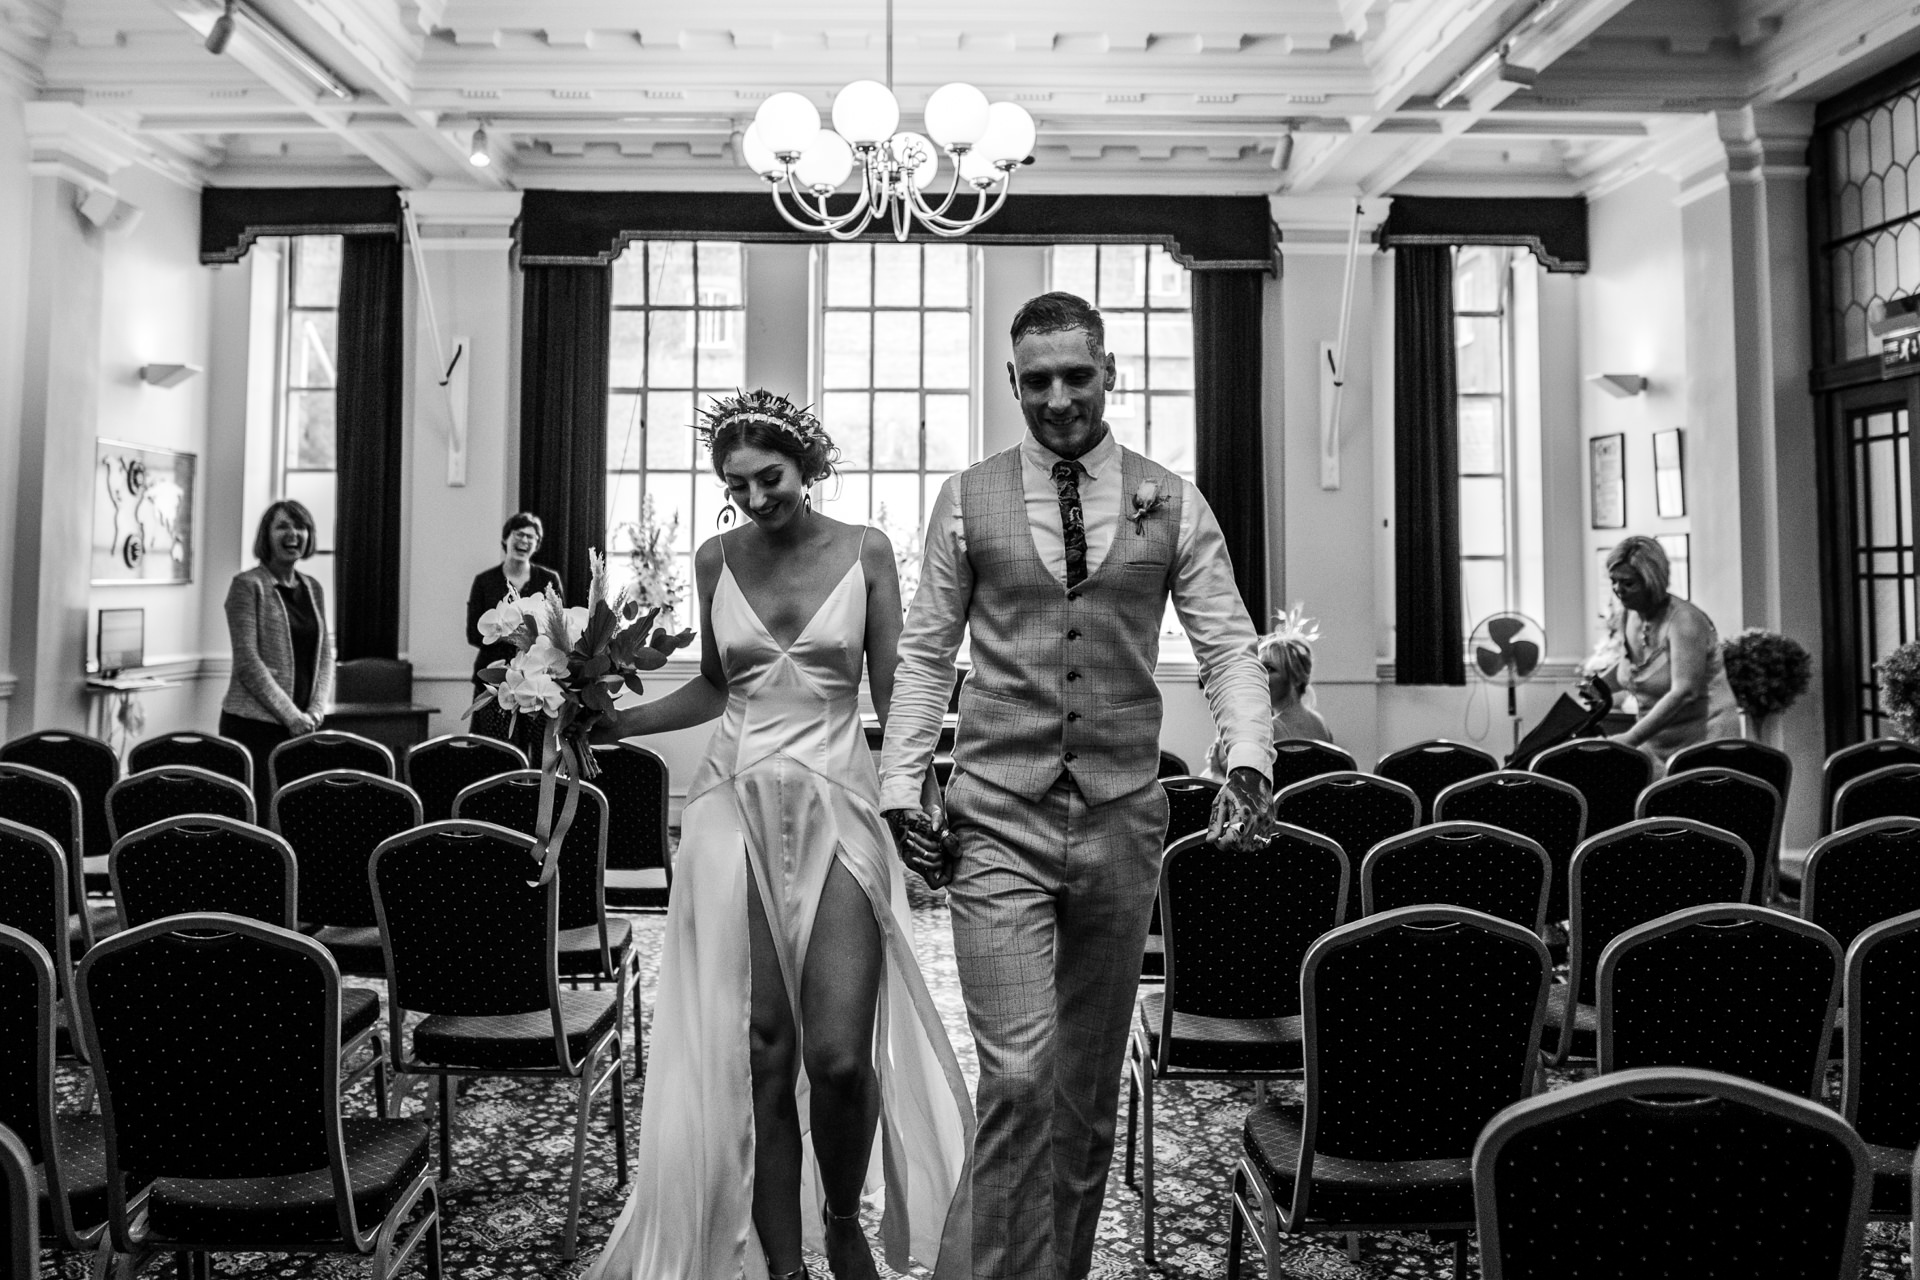 Hull Guildhall, East Yorkshire, UK Elopement Photographer | gli sposi escono dalla cerimonia eccitati